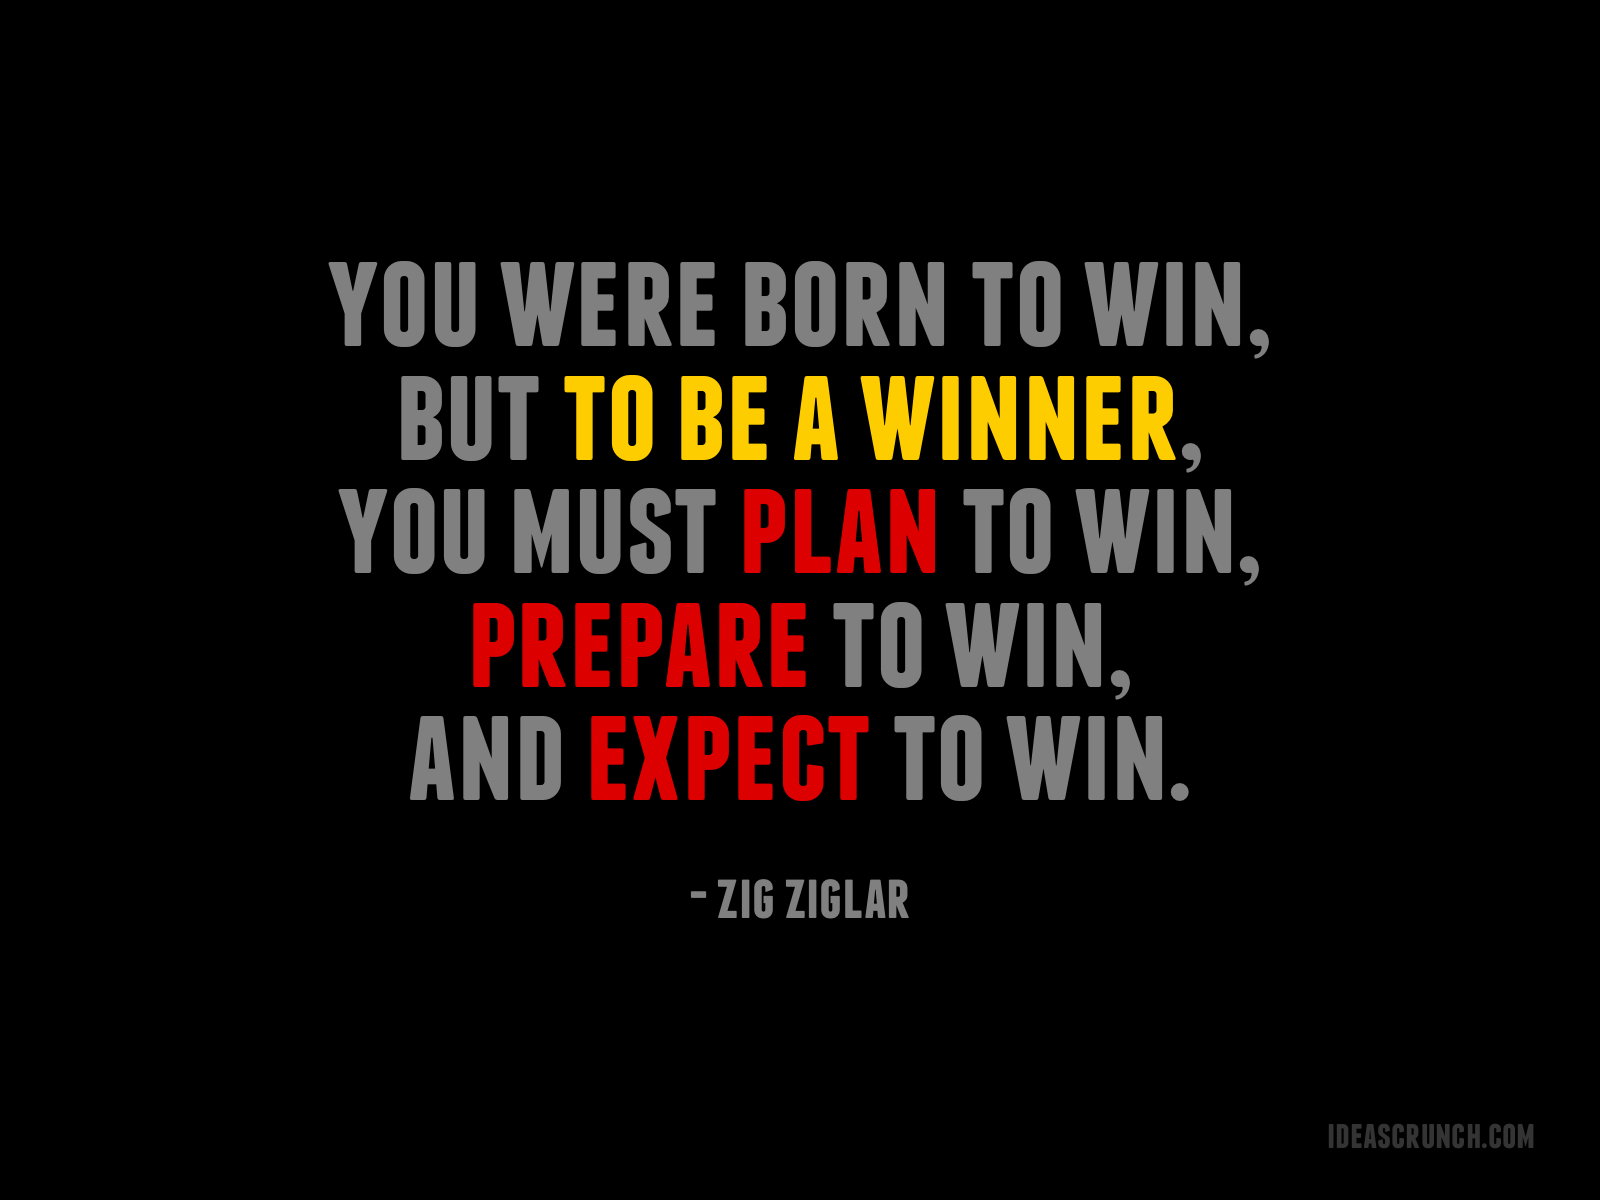 Motivational Quotes For Sports Teams: Small Wins Quotes. QuotesGram